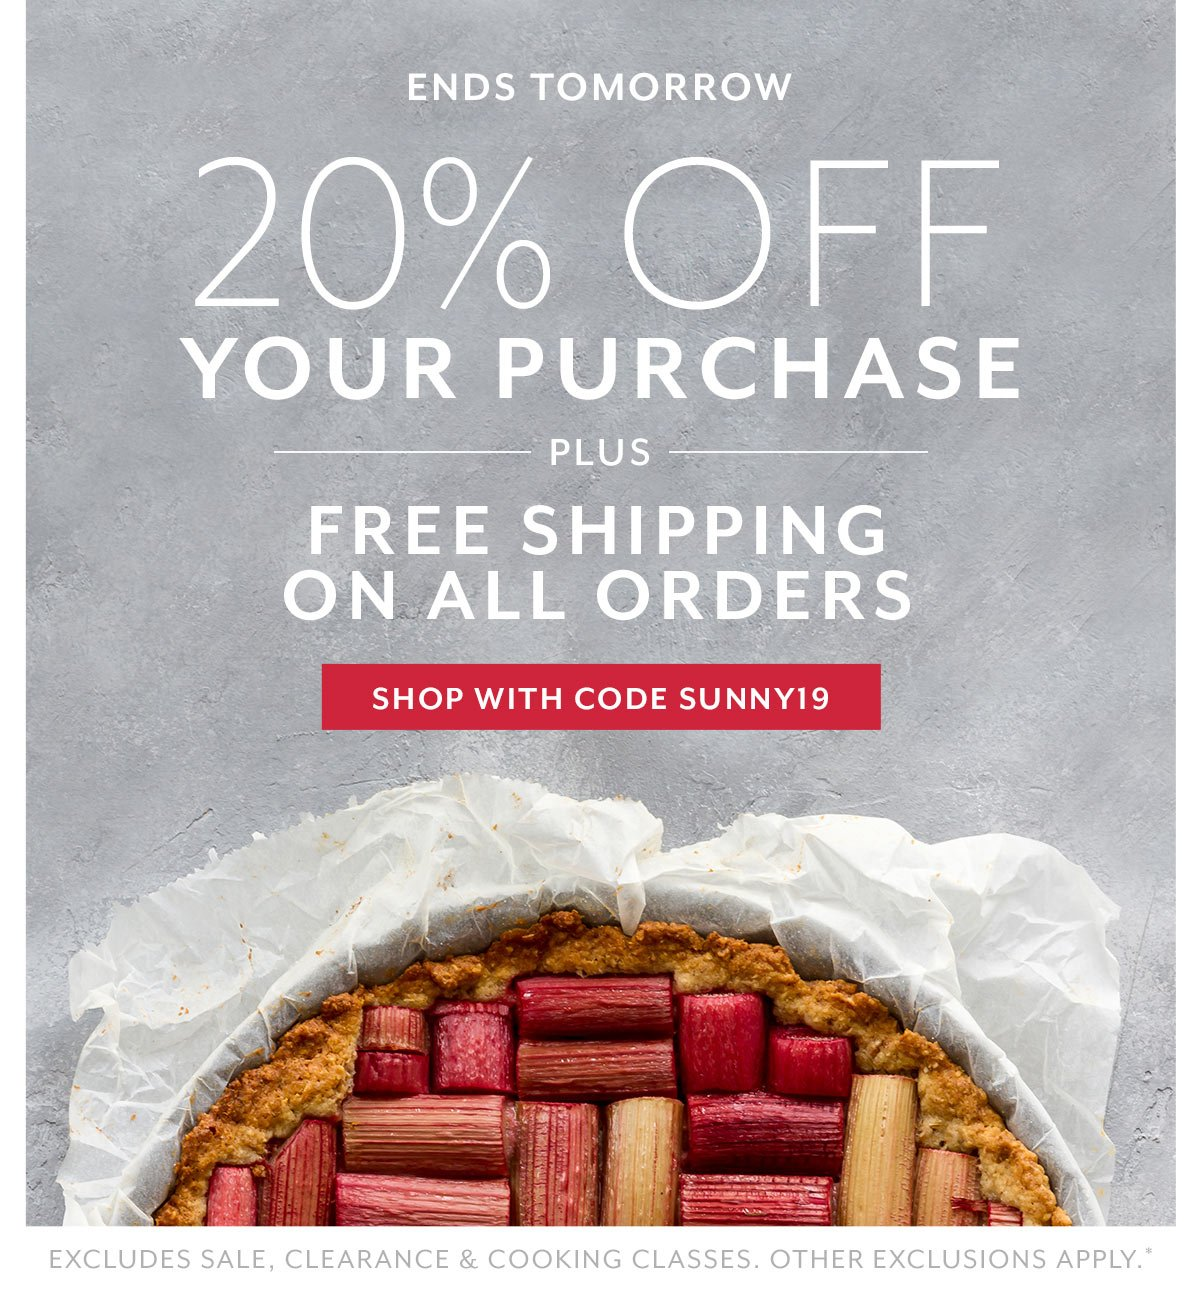 20% Off Your Purchase + Free Shipping